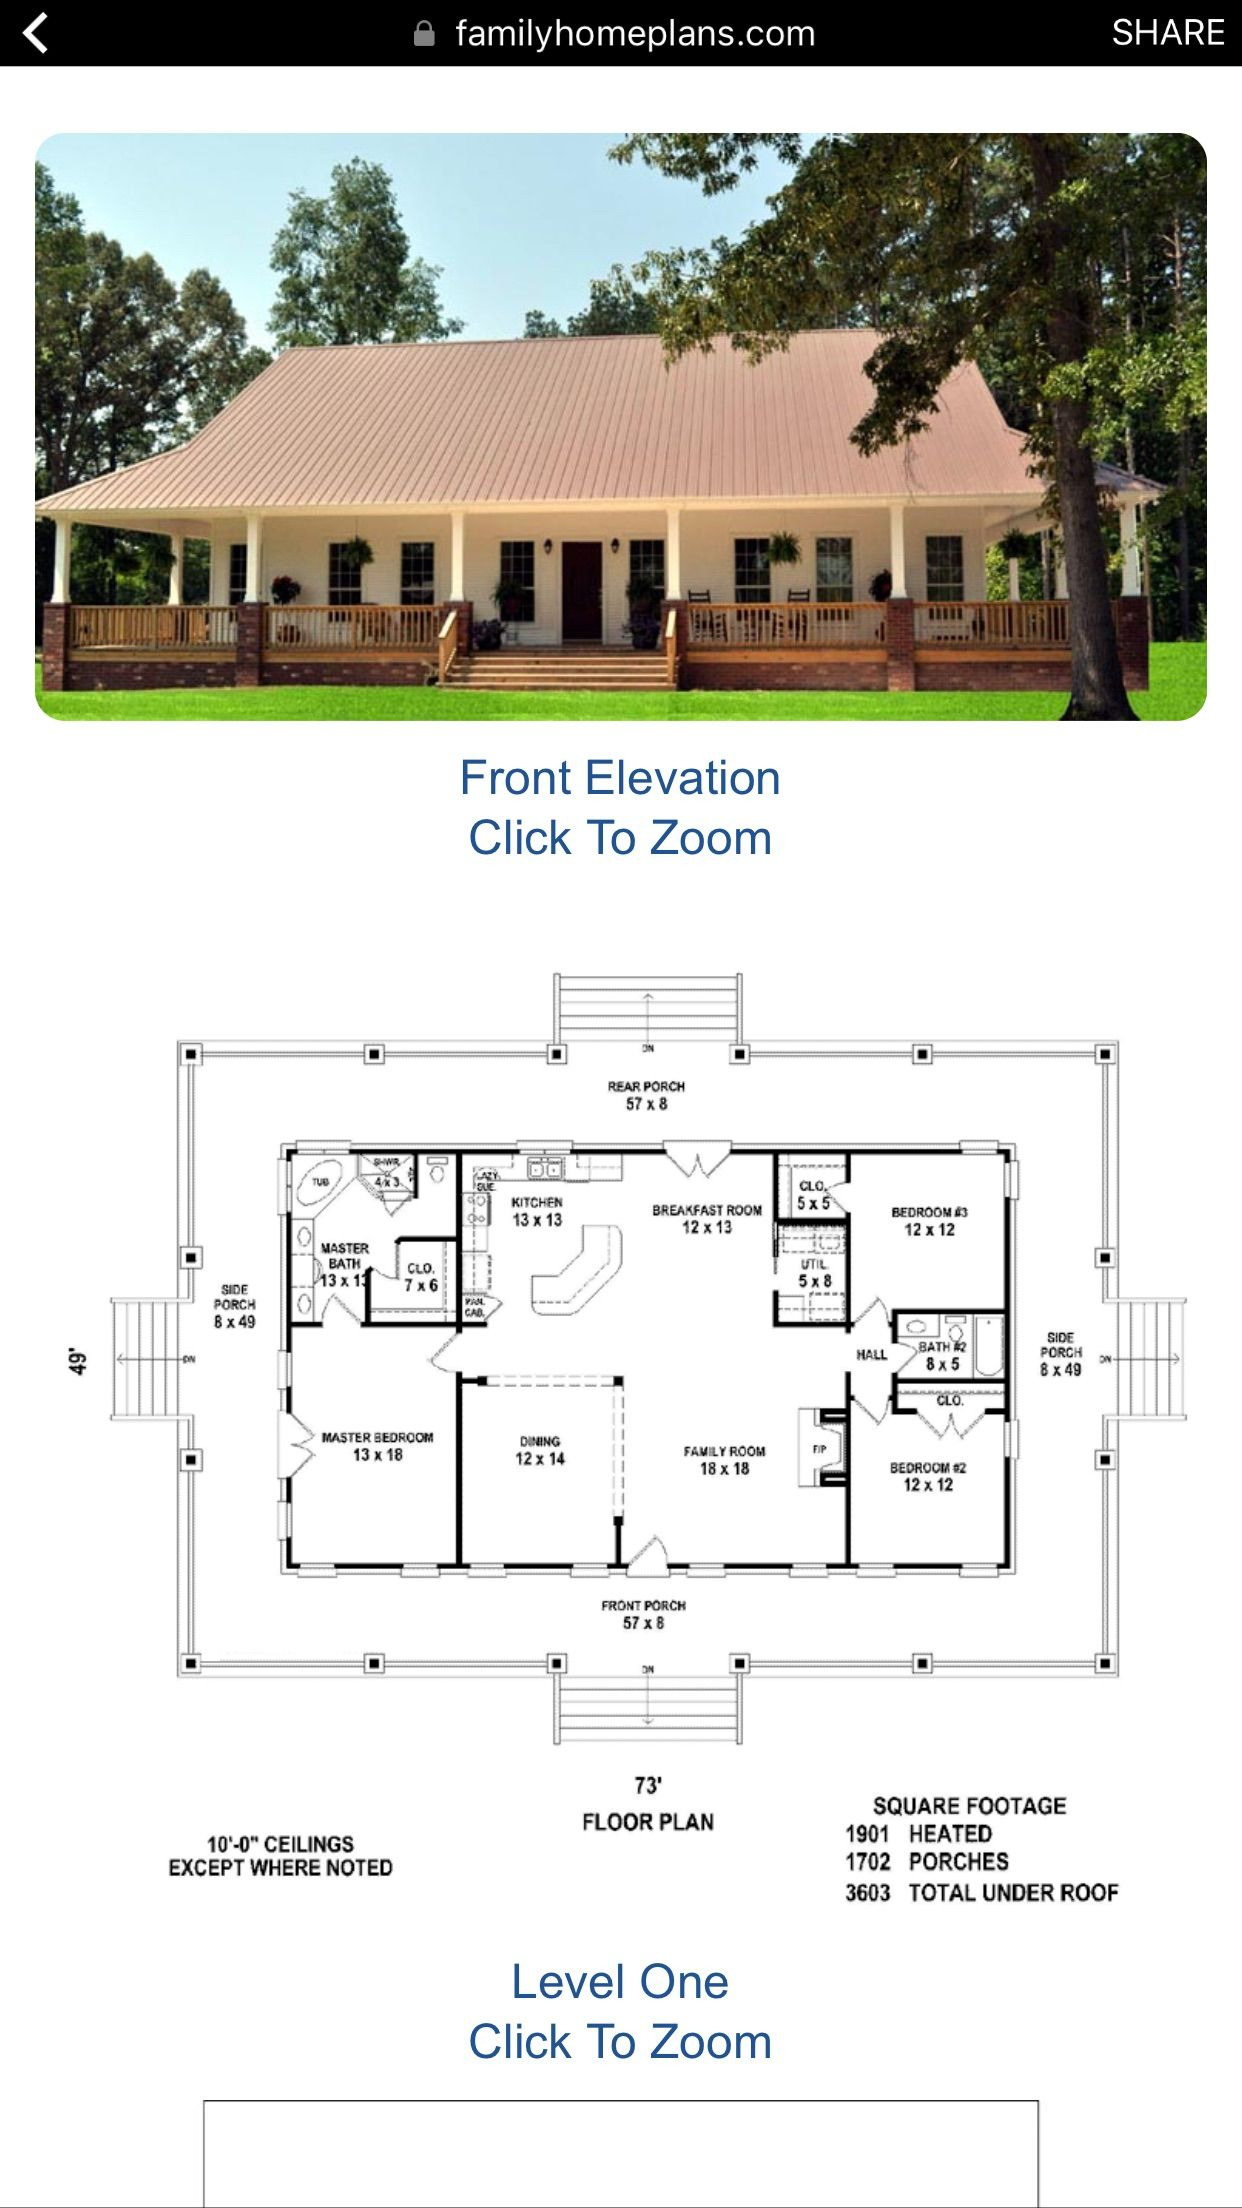 House Plans with Wrap Around Porches 1 Story New Pin On House Plans